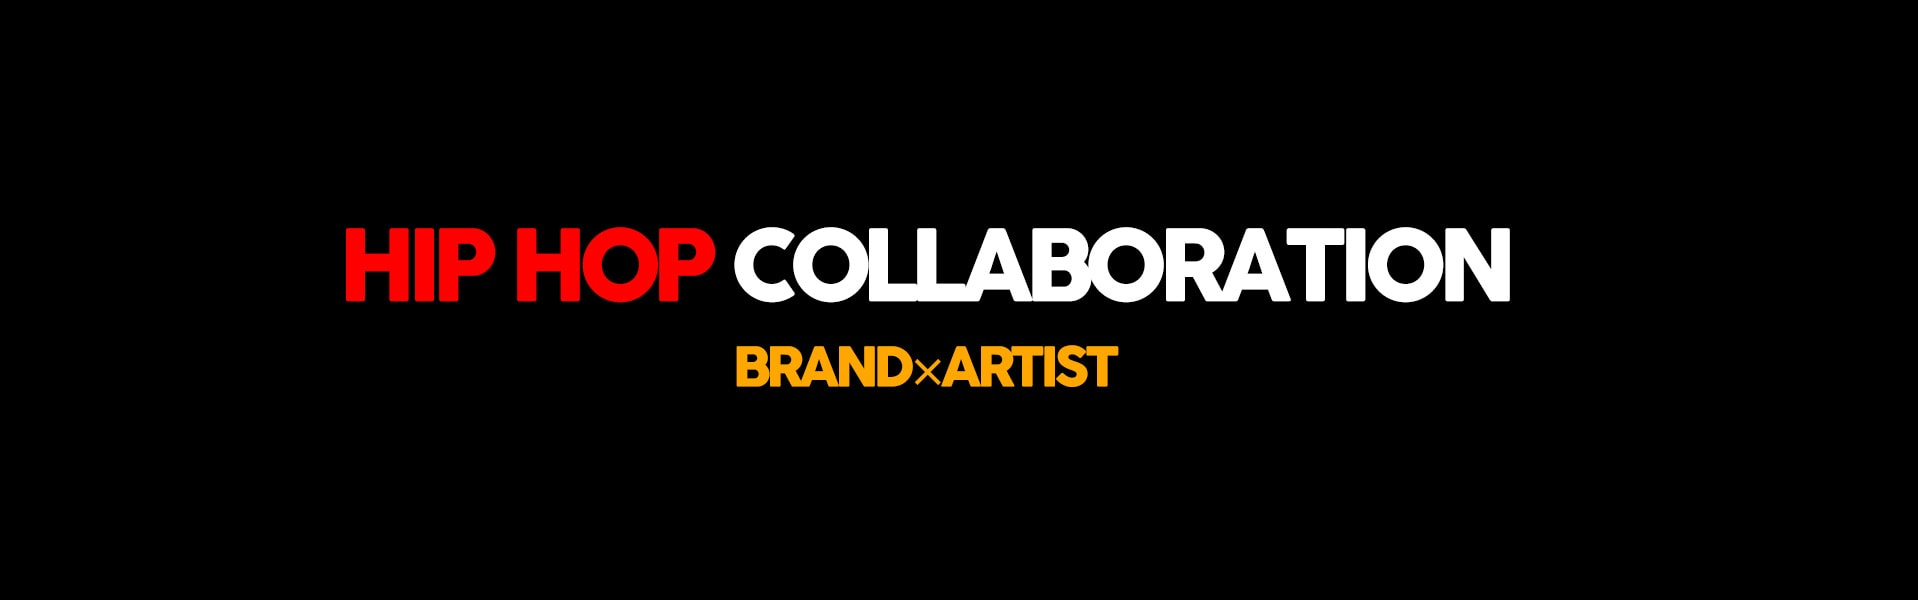 HipHop Collaboration